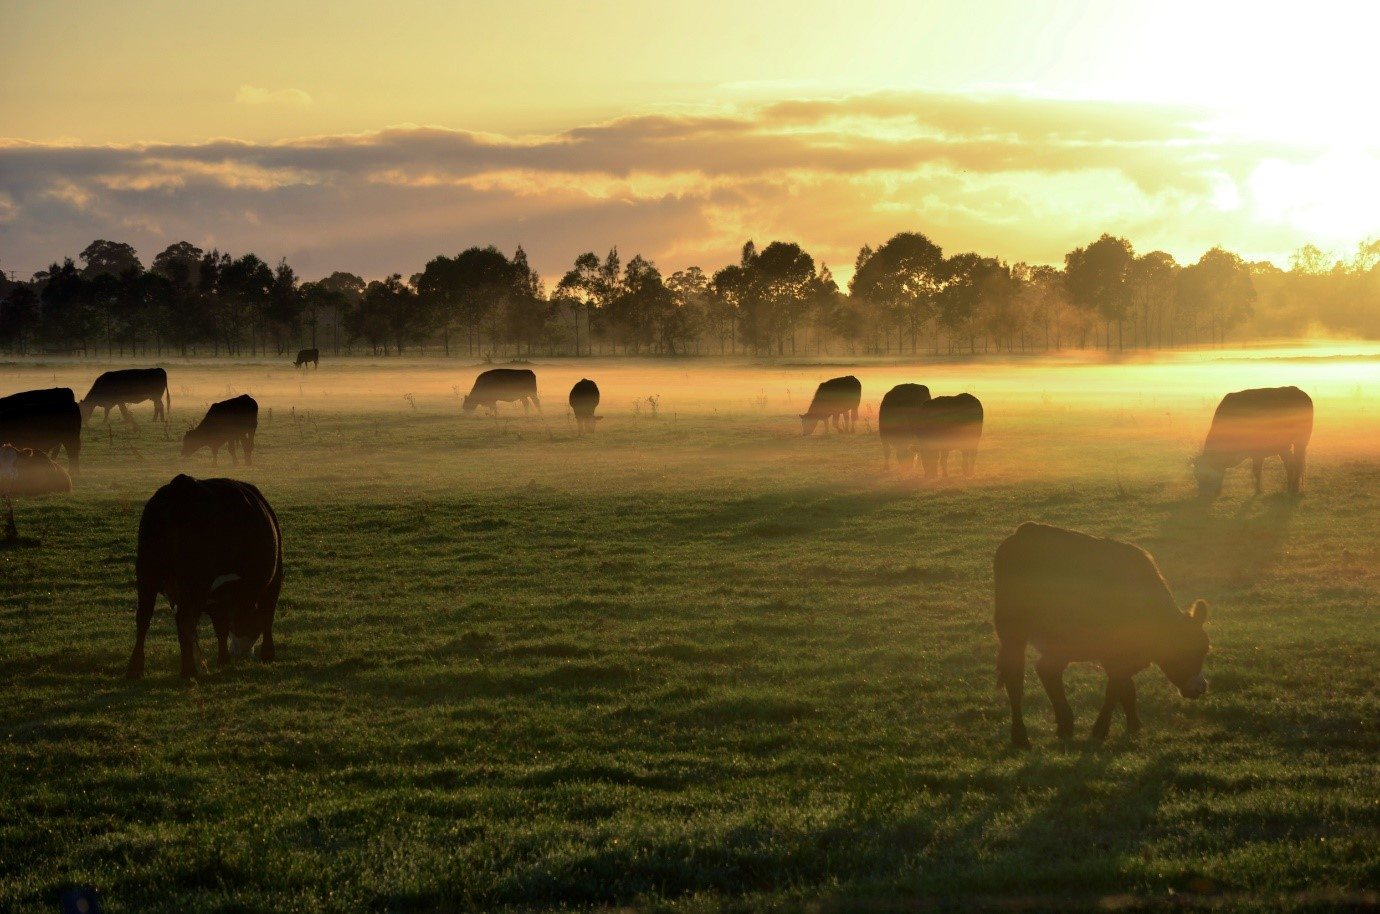 NSW DPI scientists have been heralded for their contribution to extensive livestock with inclusion in the 60th Anniversary special edition of Animal Production Science journal.